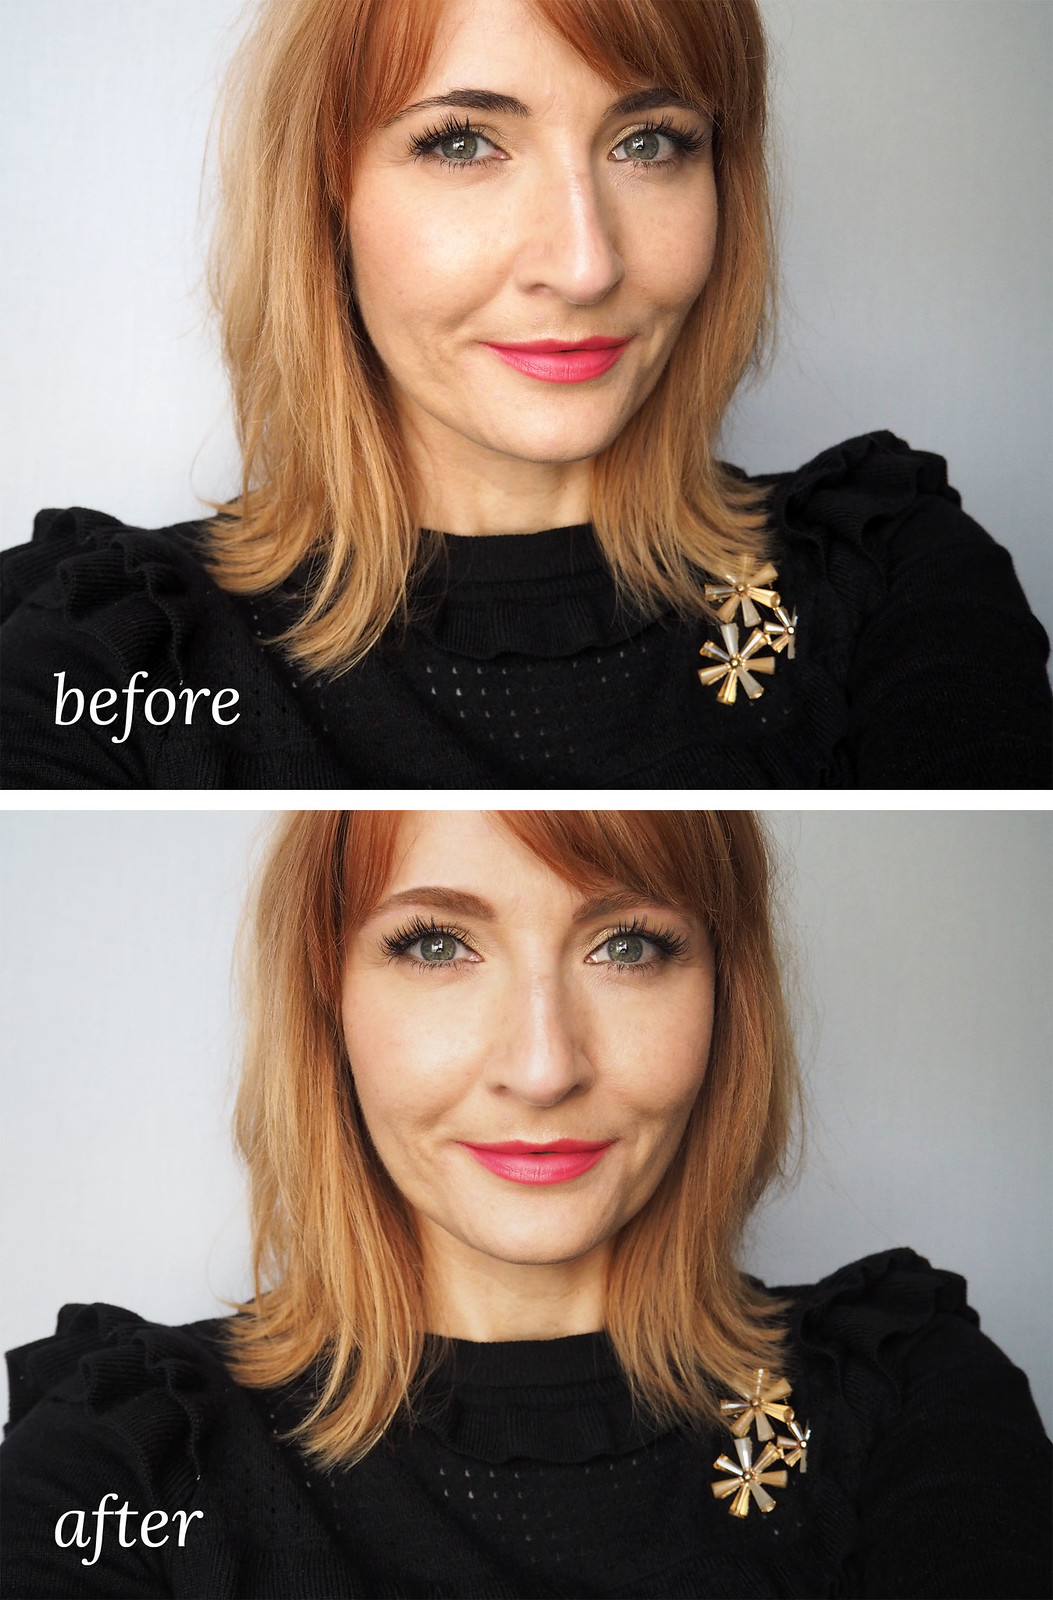 Bleaching Dark Eyebrows To Match Red Or Blonde Hair Not Dressed As